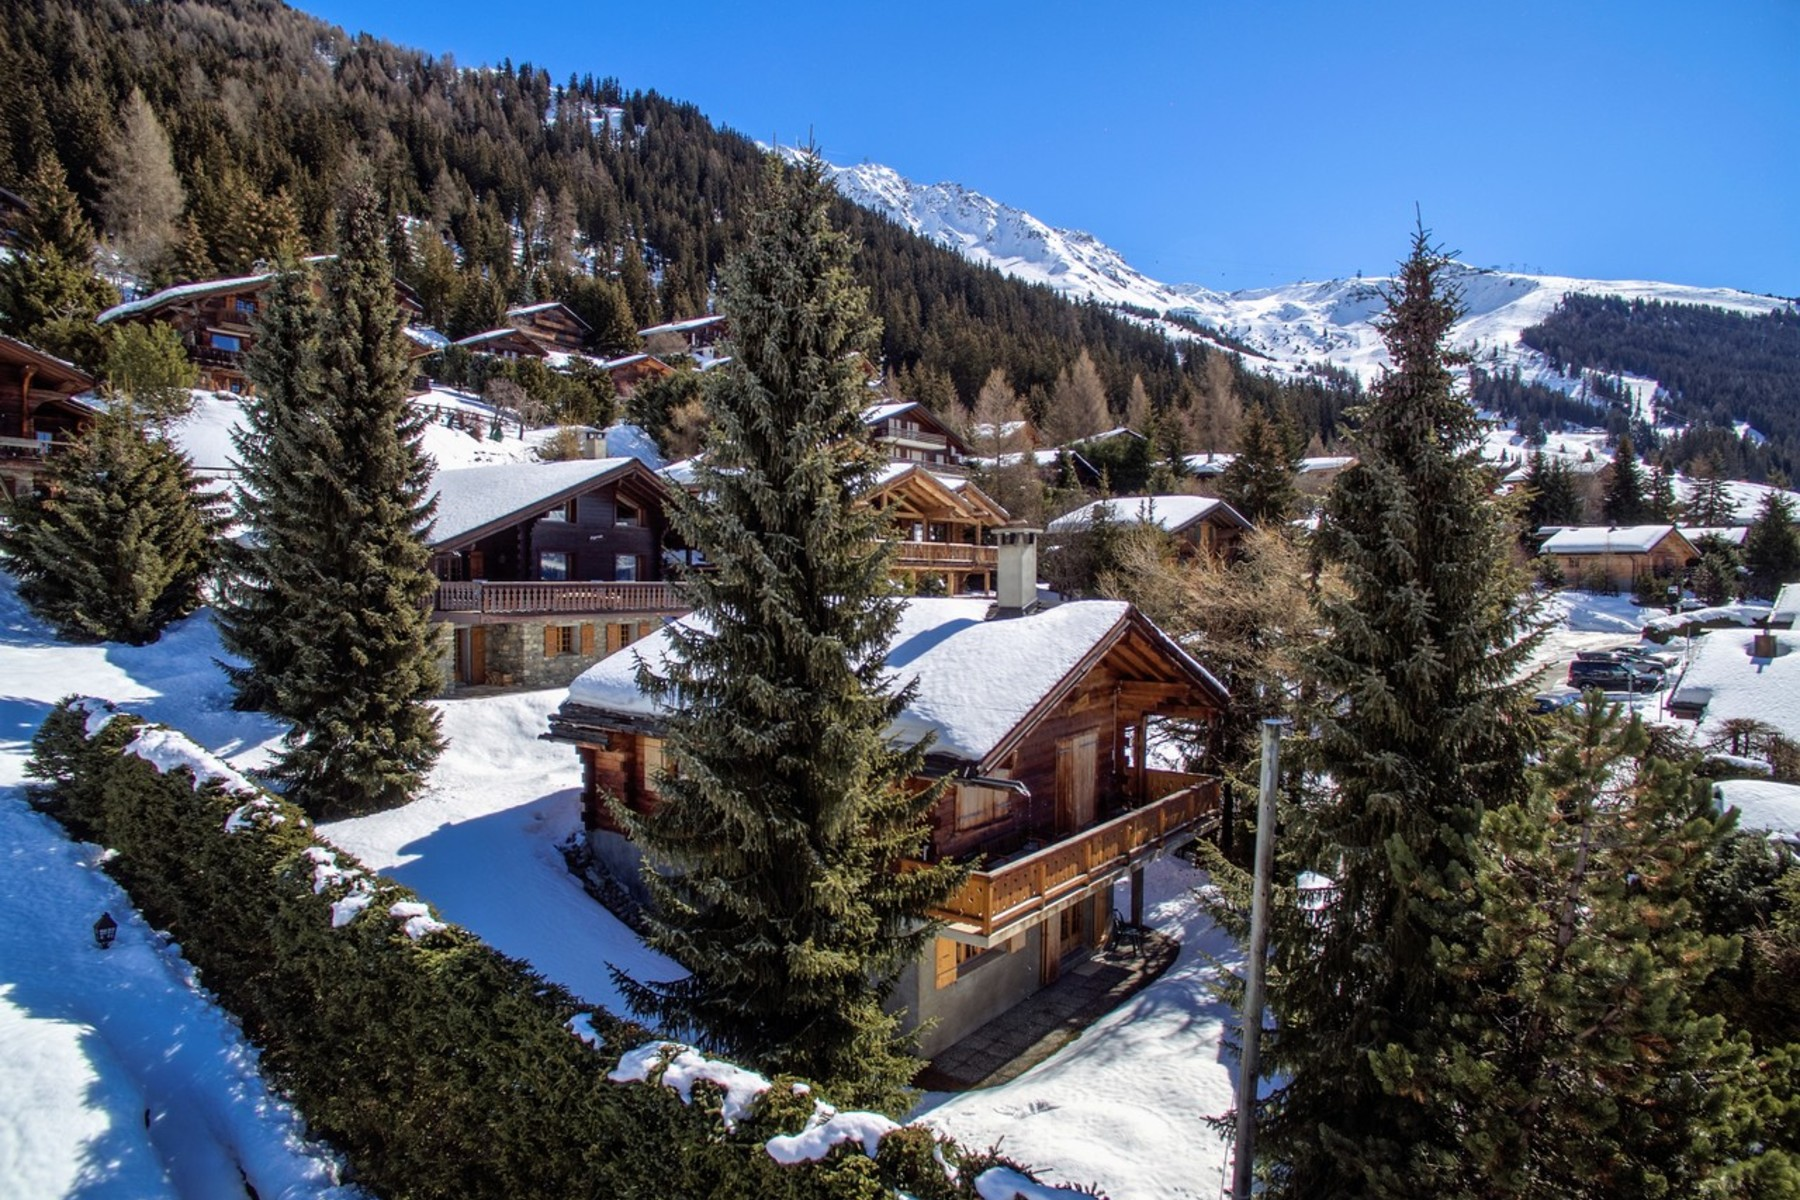 Single Family Home for Sale at Chalet BEL MARDUK Verbier, Valais, 1936 Switzerland